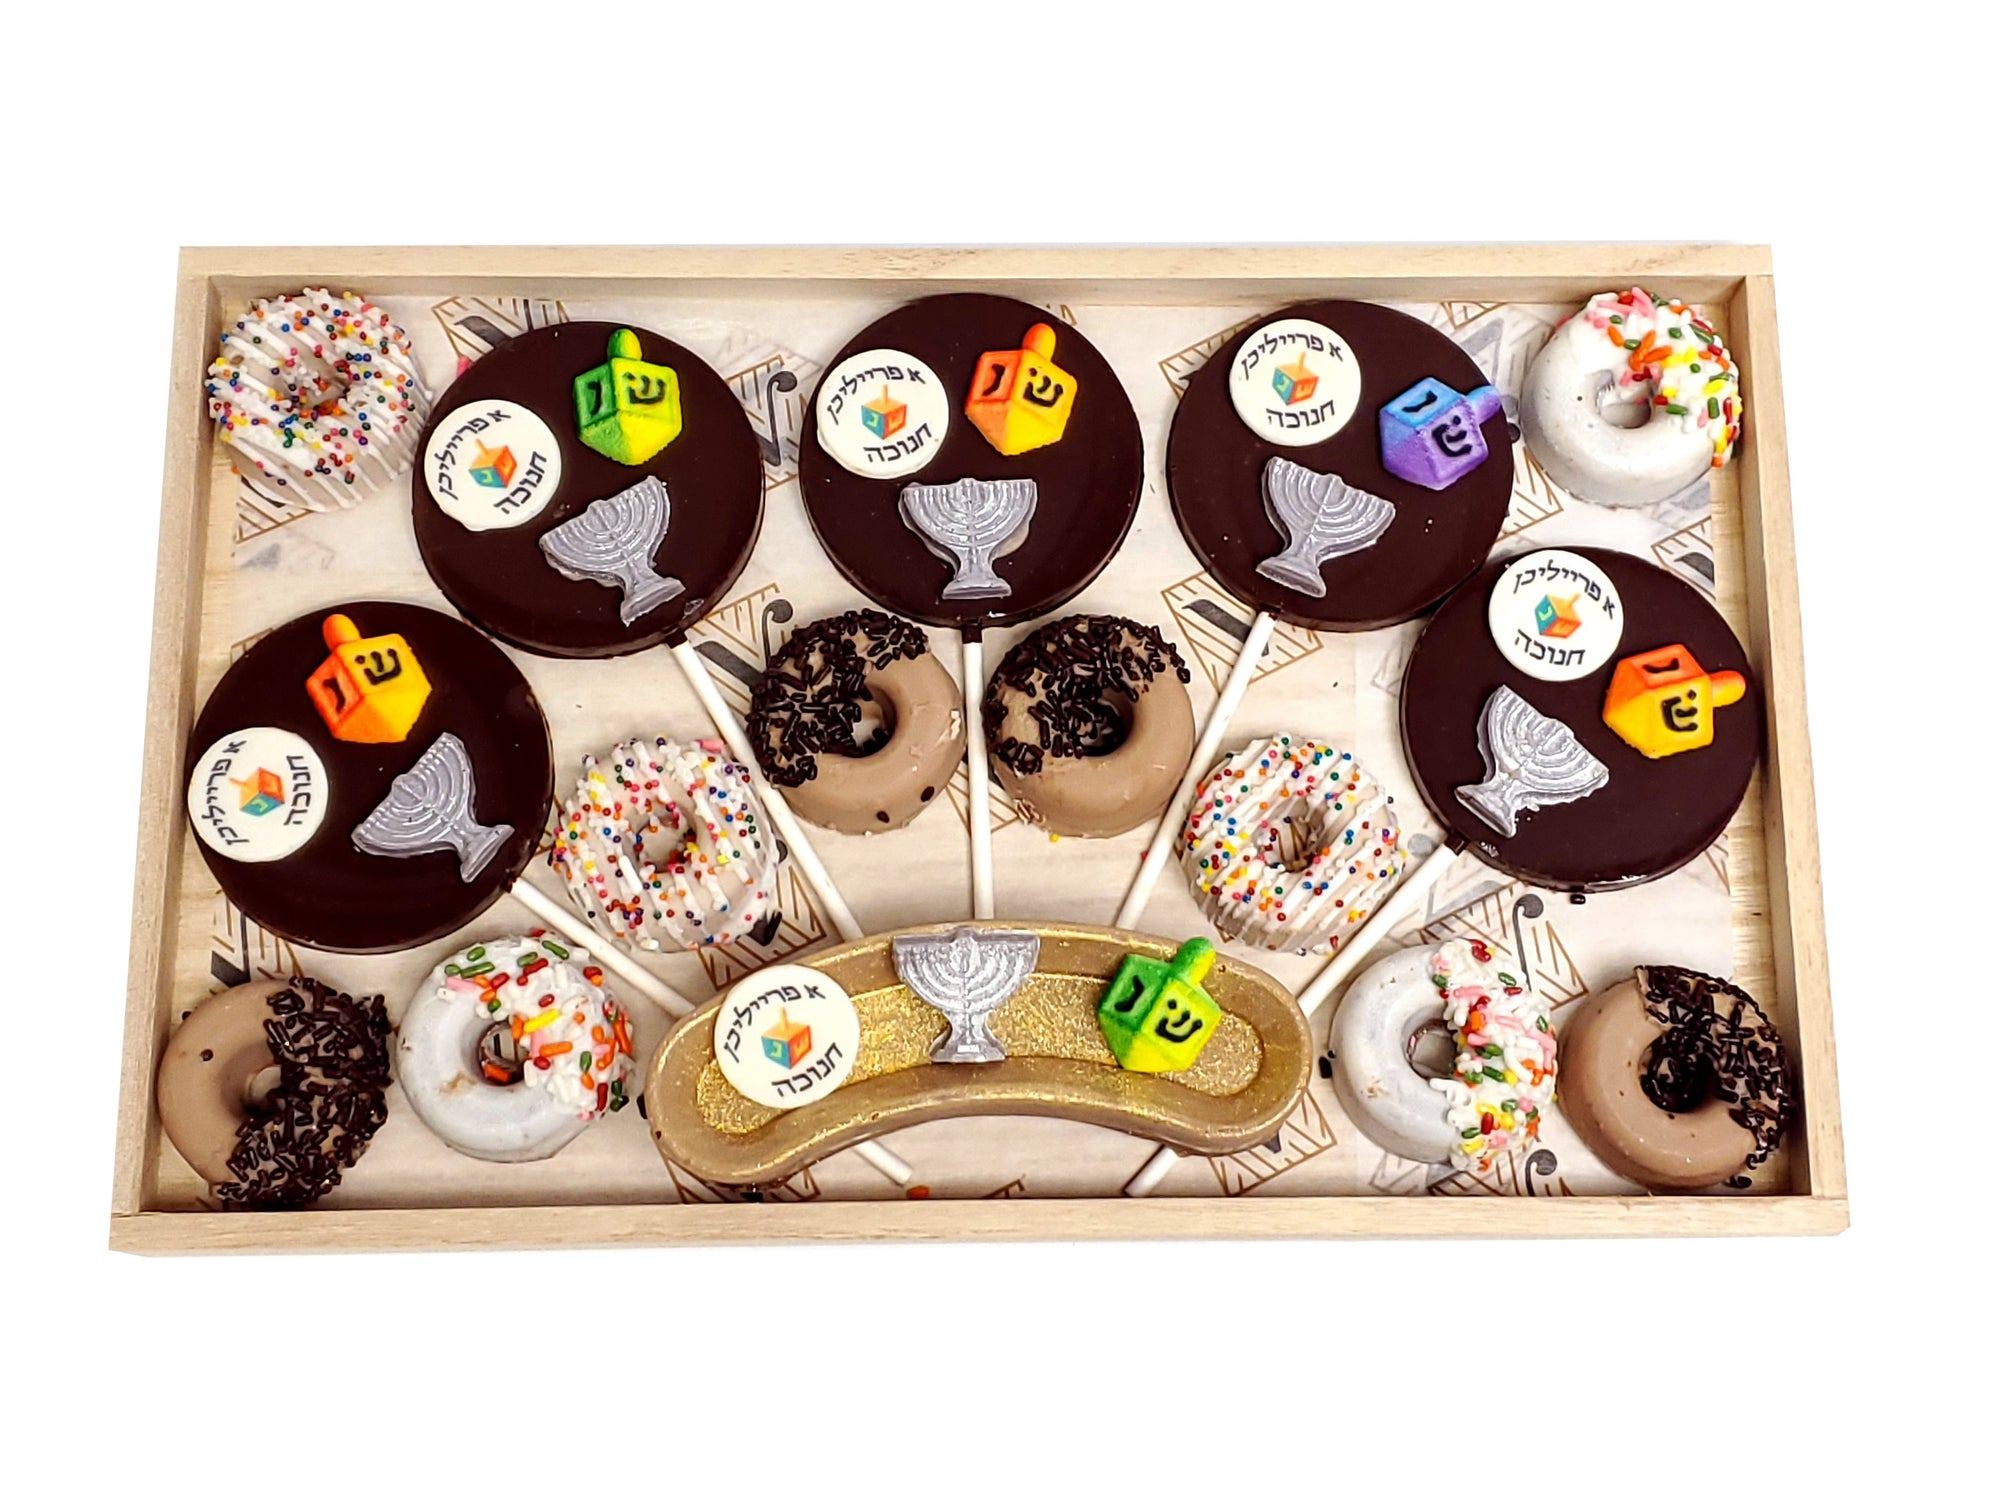 3D Chocolate Chanukah Party Platter